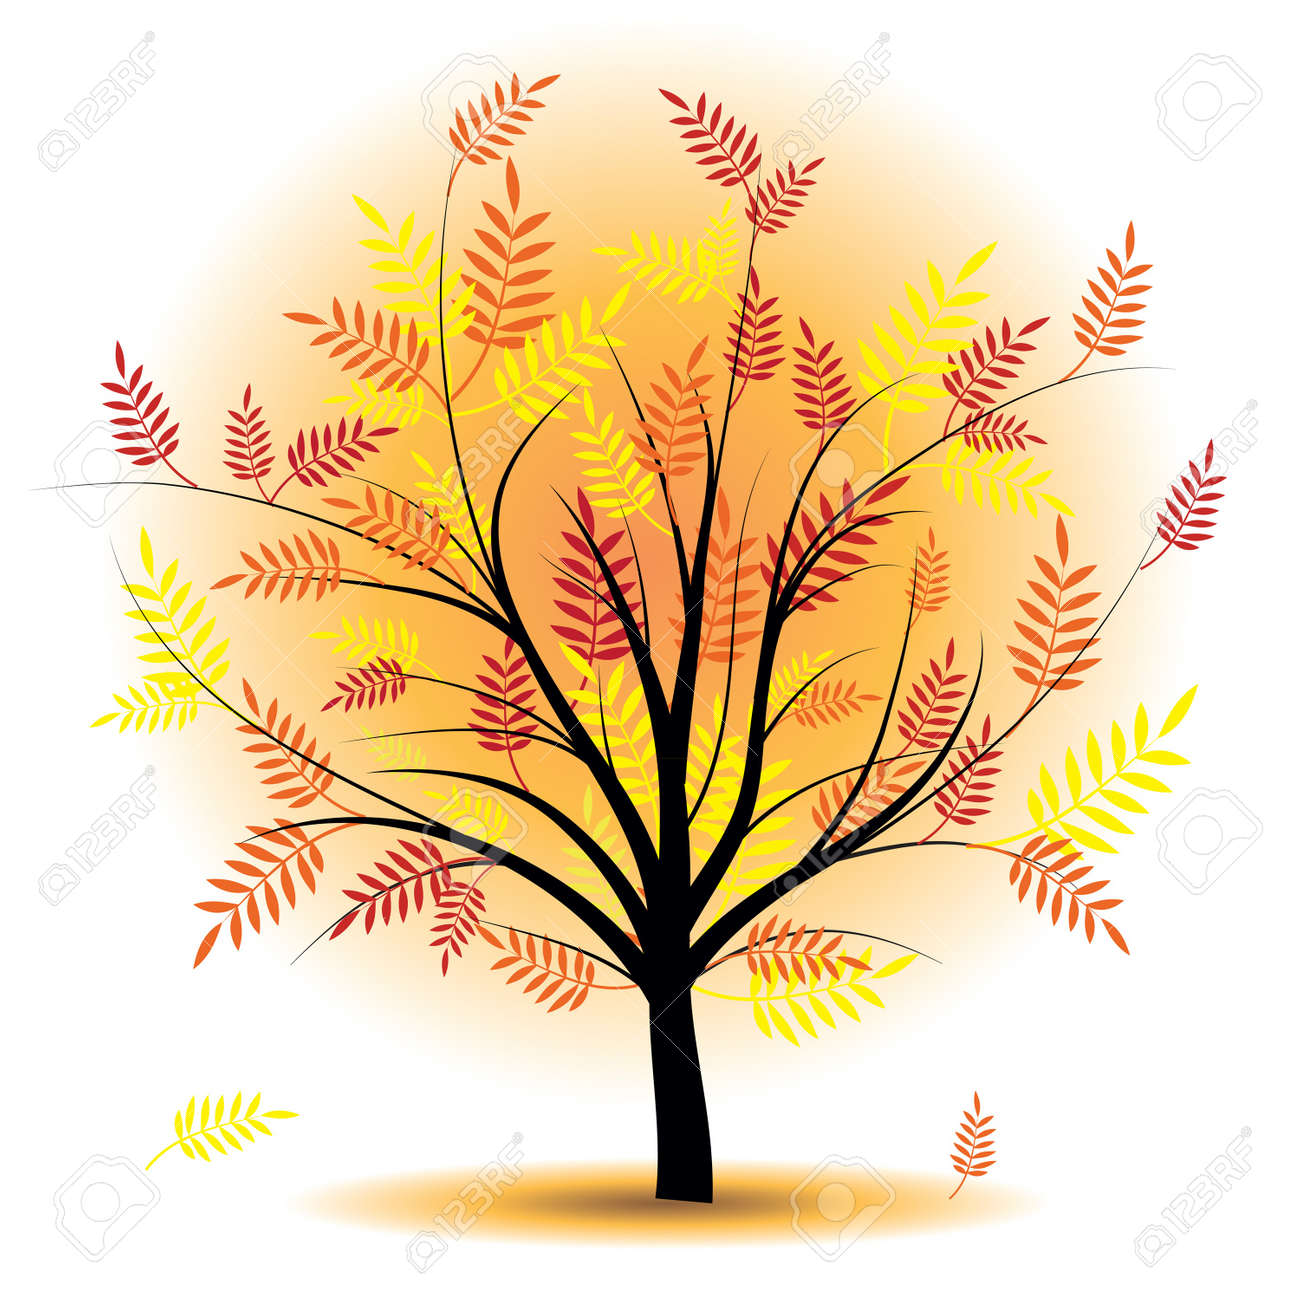 Beautiful autumn tree. Design element. Fall illustration. Stock Vector - 10014589